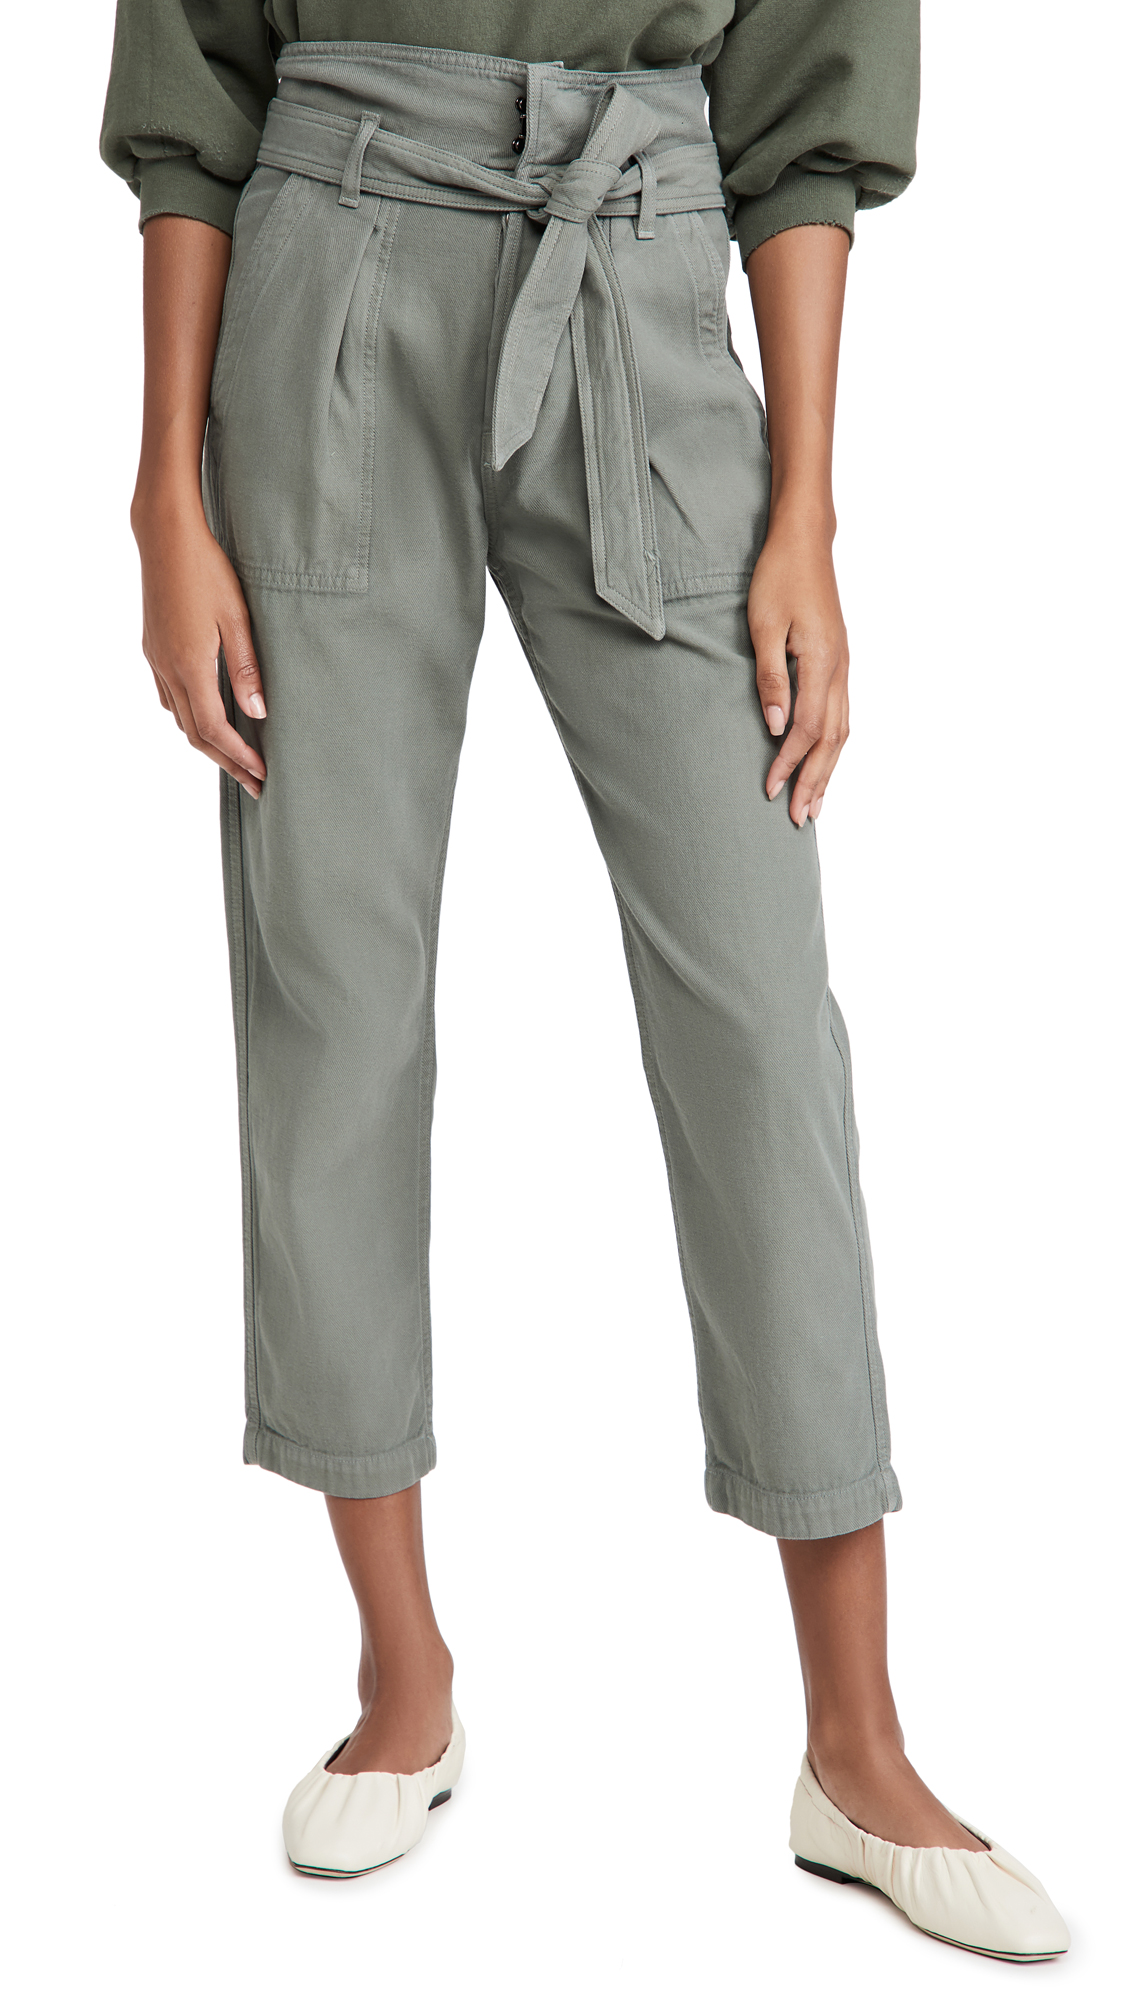 Citizens of Humanity Noelle Belted Cargo Pants